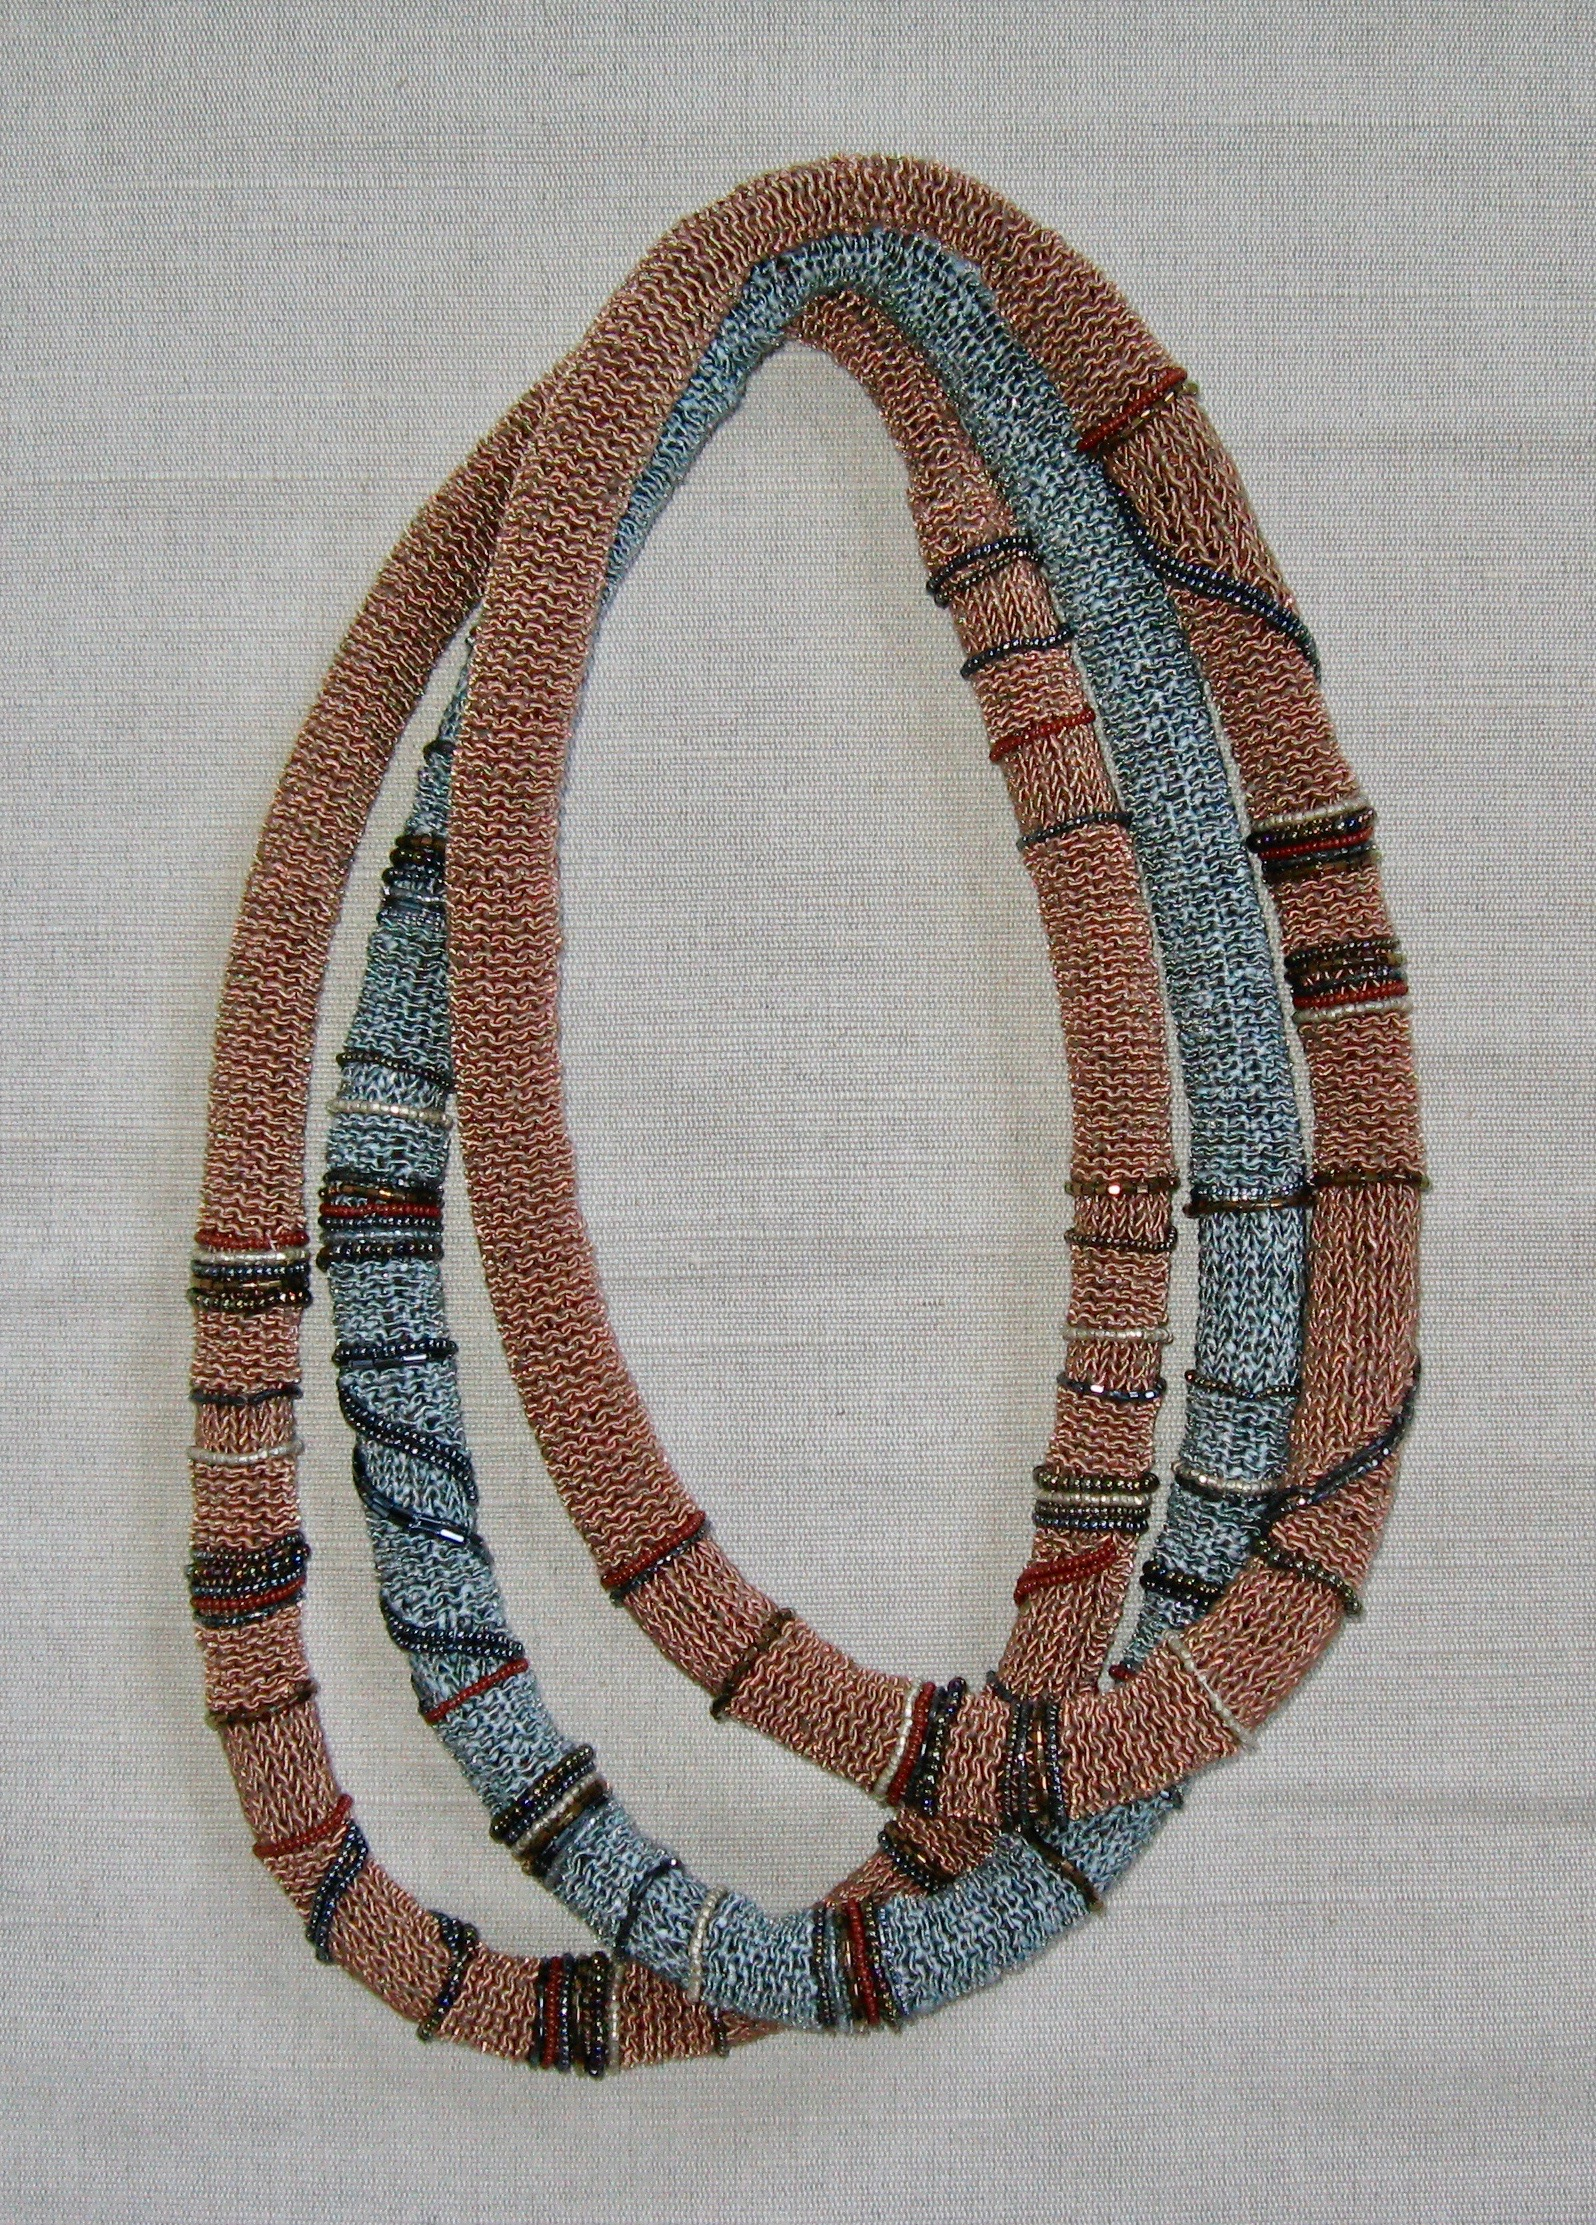 """Knit and Beaded Necklaces  2010 Approximately 28""""to 30"""" Rayon yarn and glass beads hand knit."""